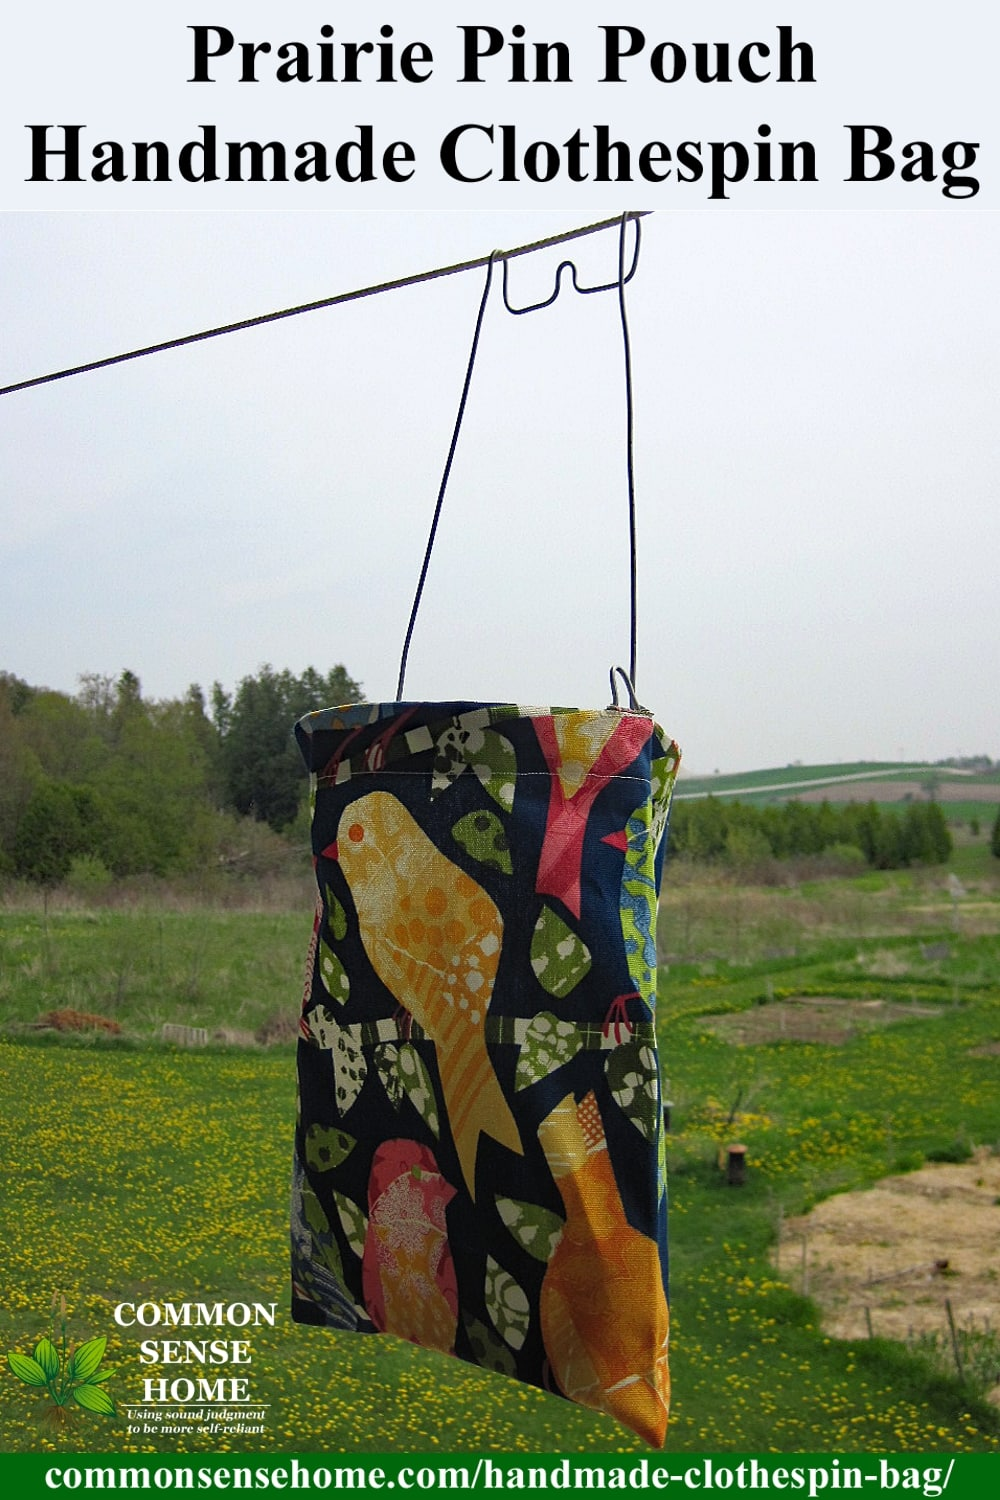 Prairie Pin Pouch on clothesline